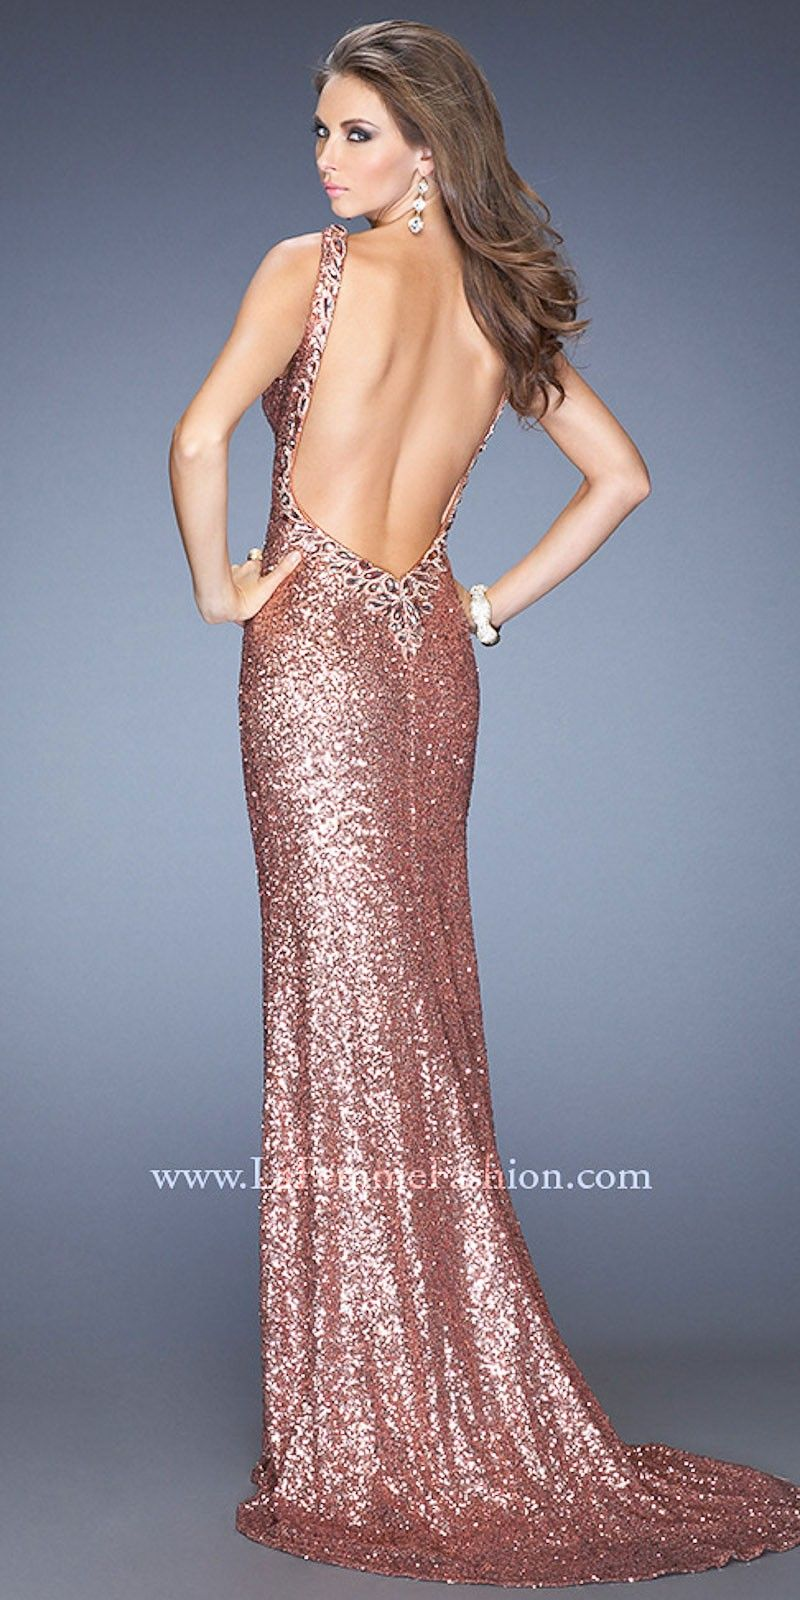 open back dresses | Boat Neck Sequin Bodice Open Back Prom Dresses ...